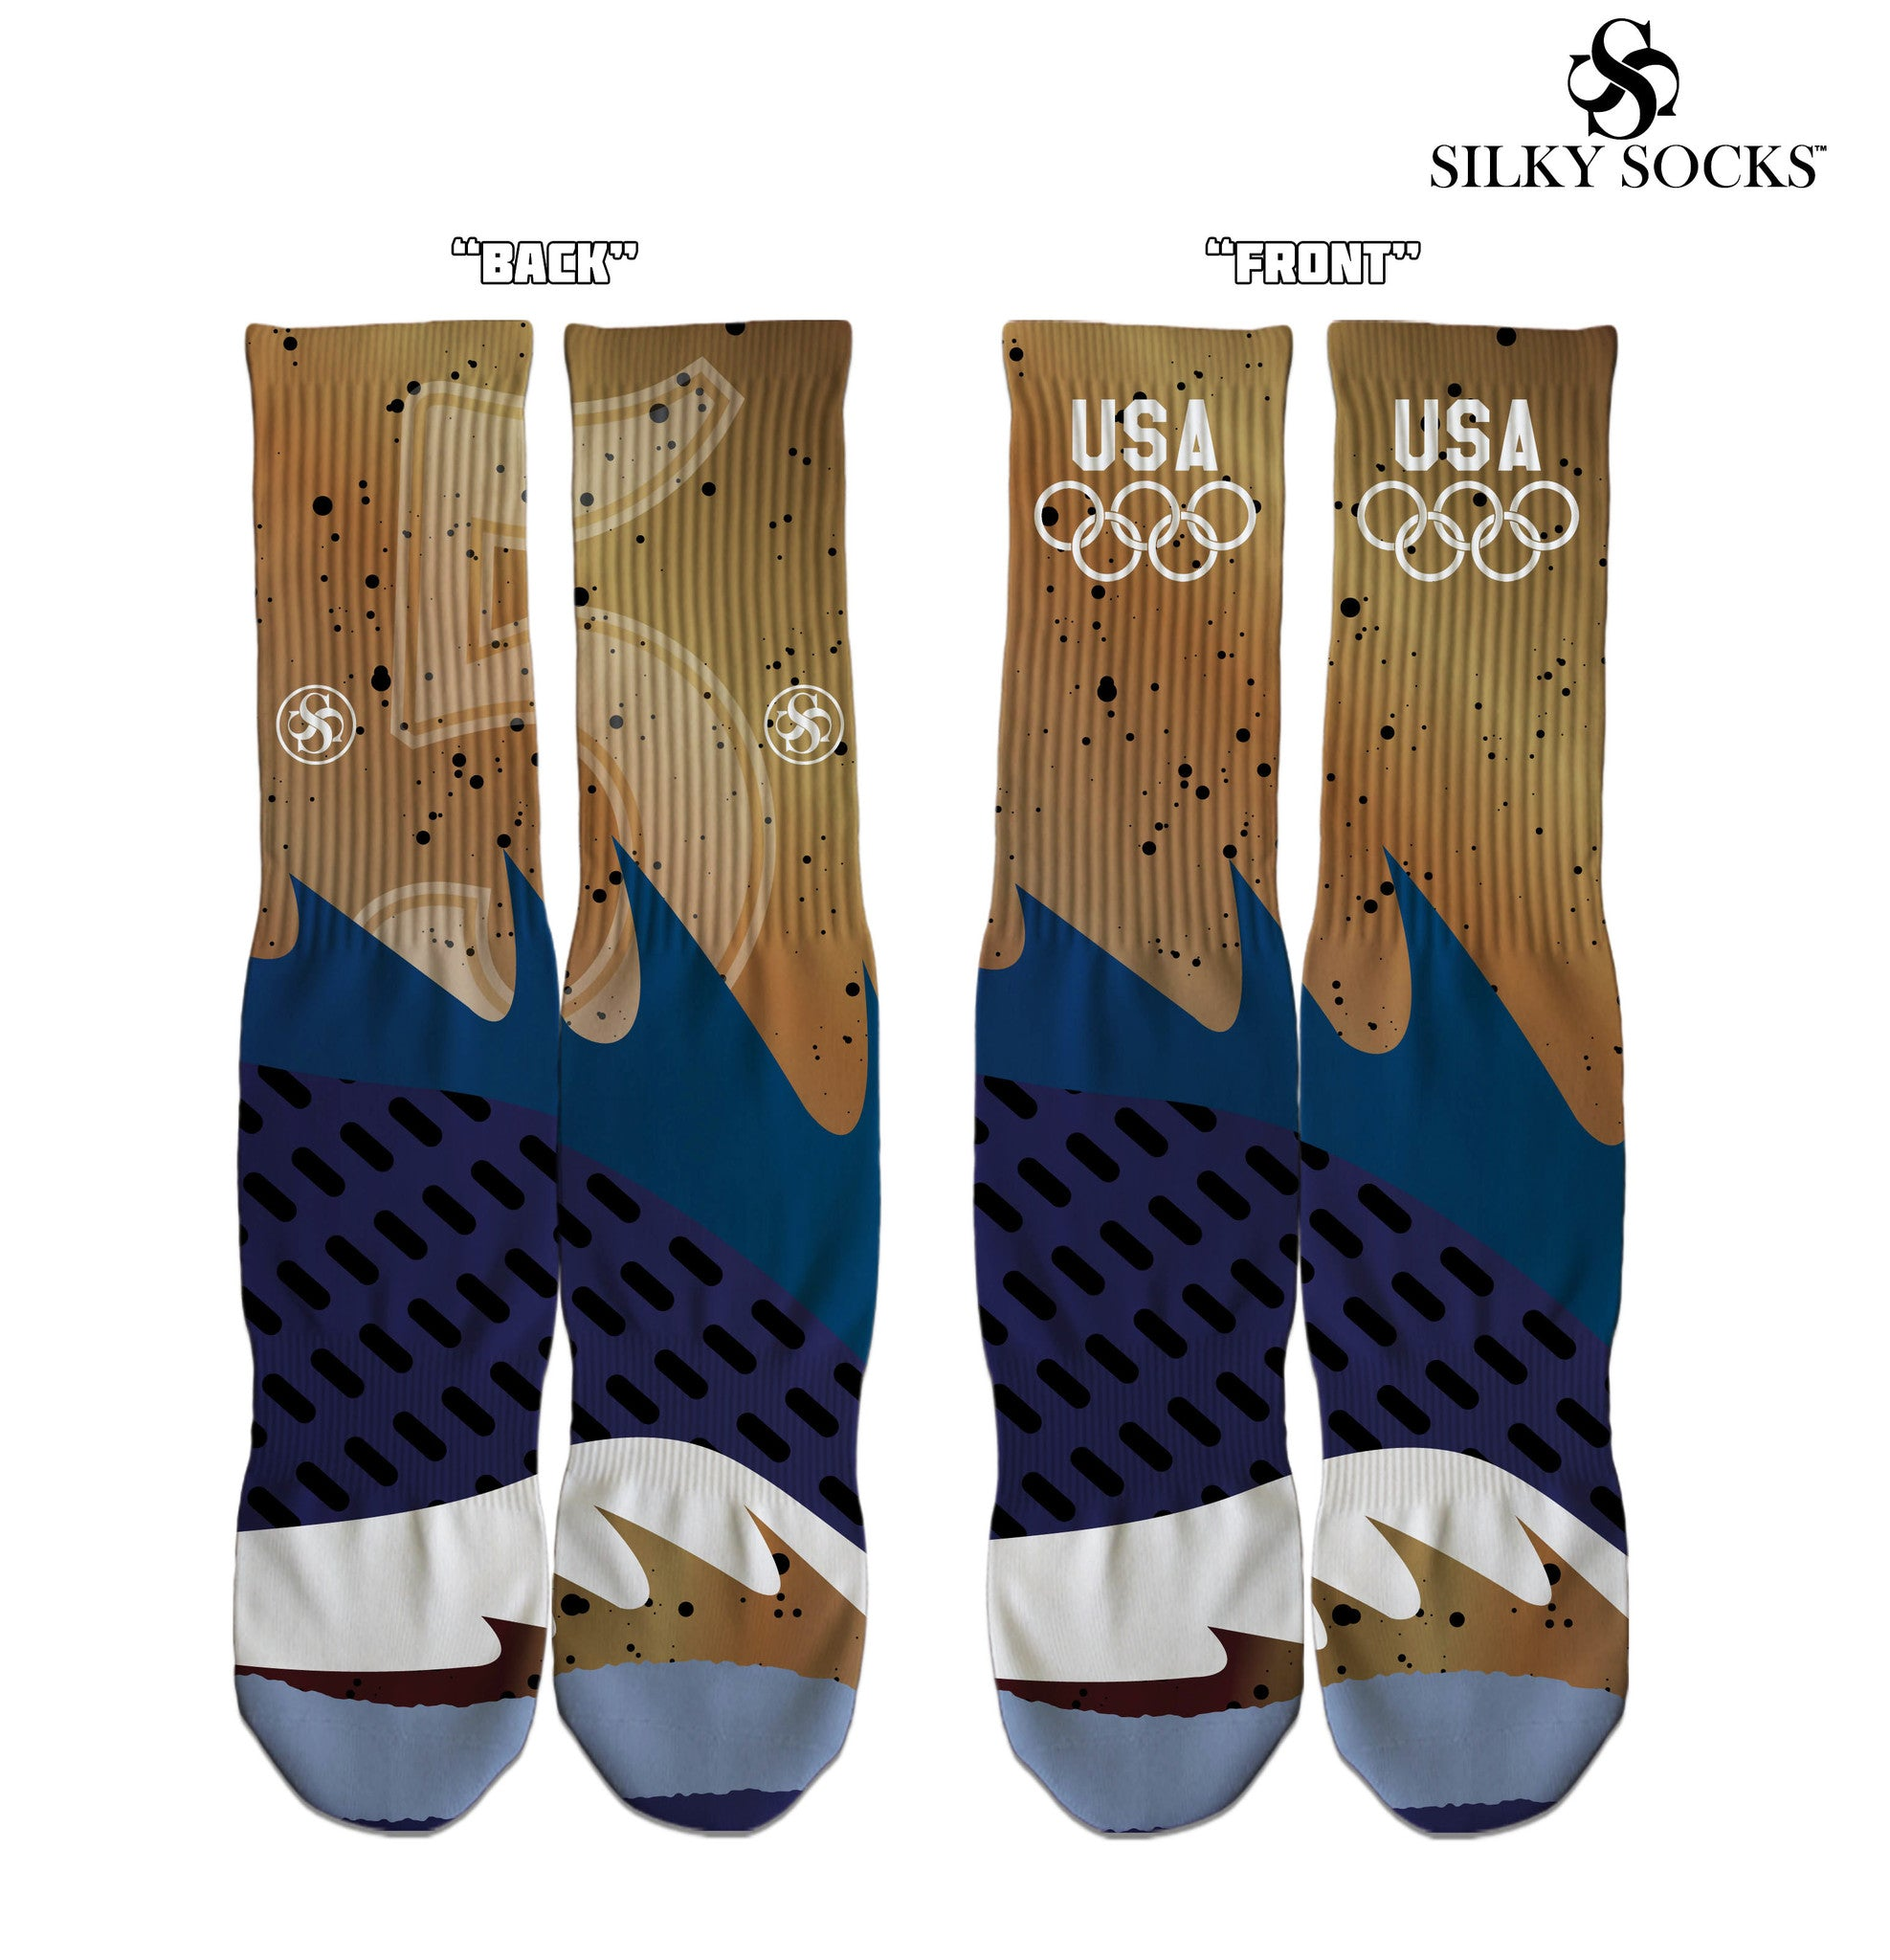 Bronze 5 Socks Air Jordan 5s matching sneakerhead socks